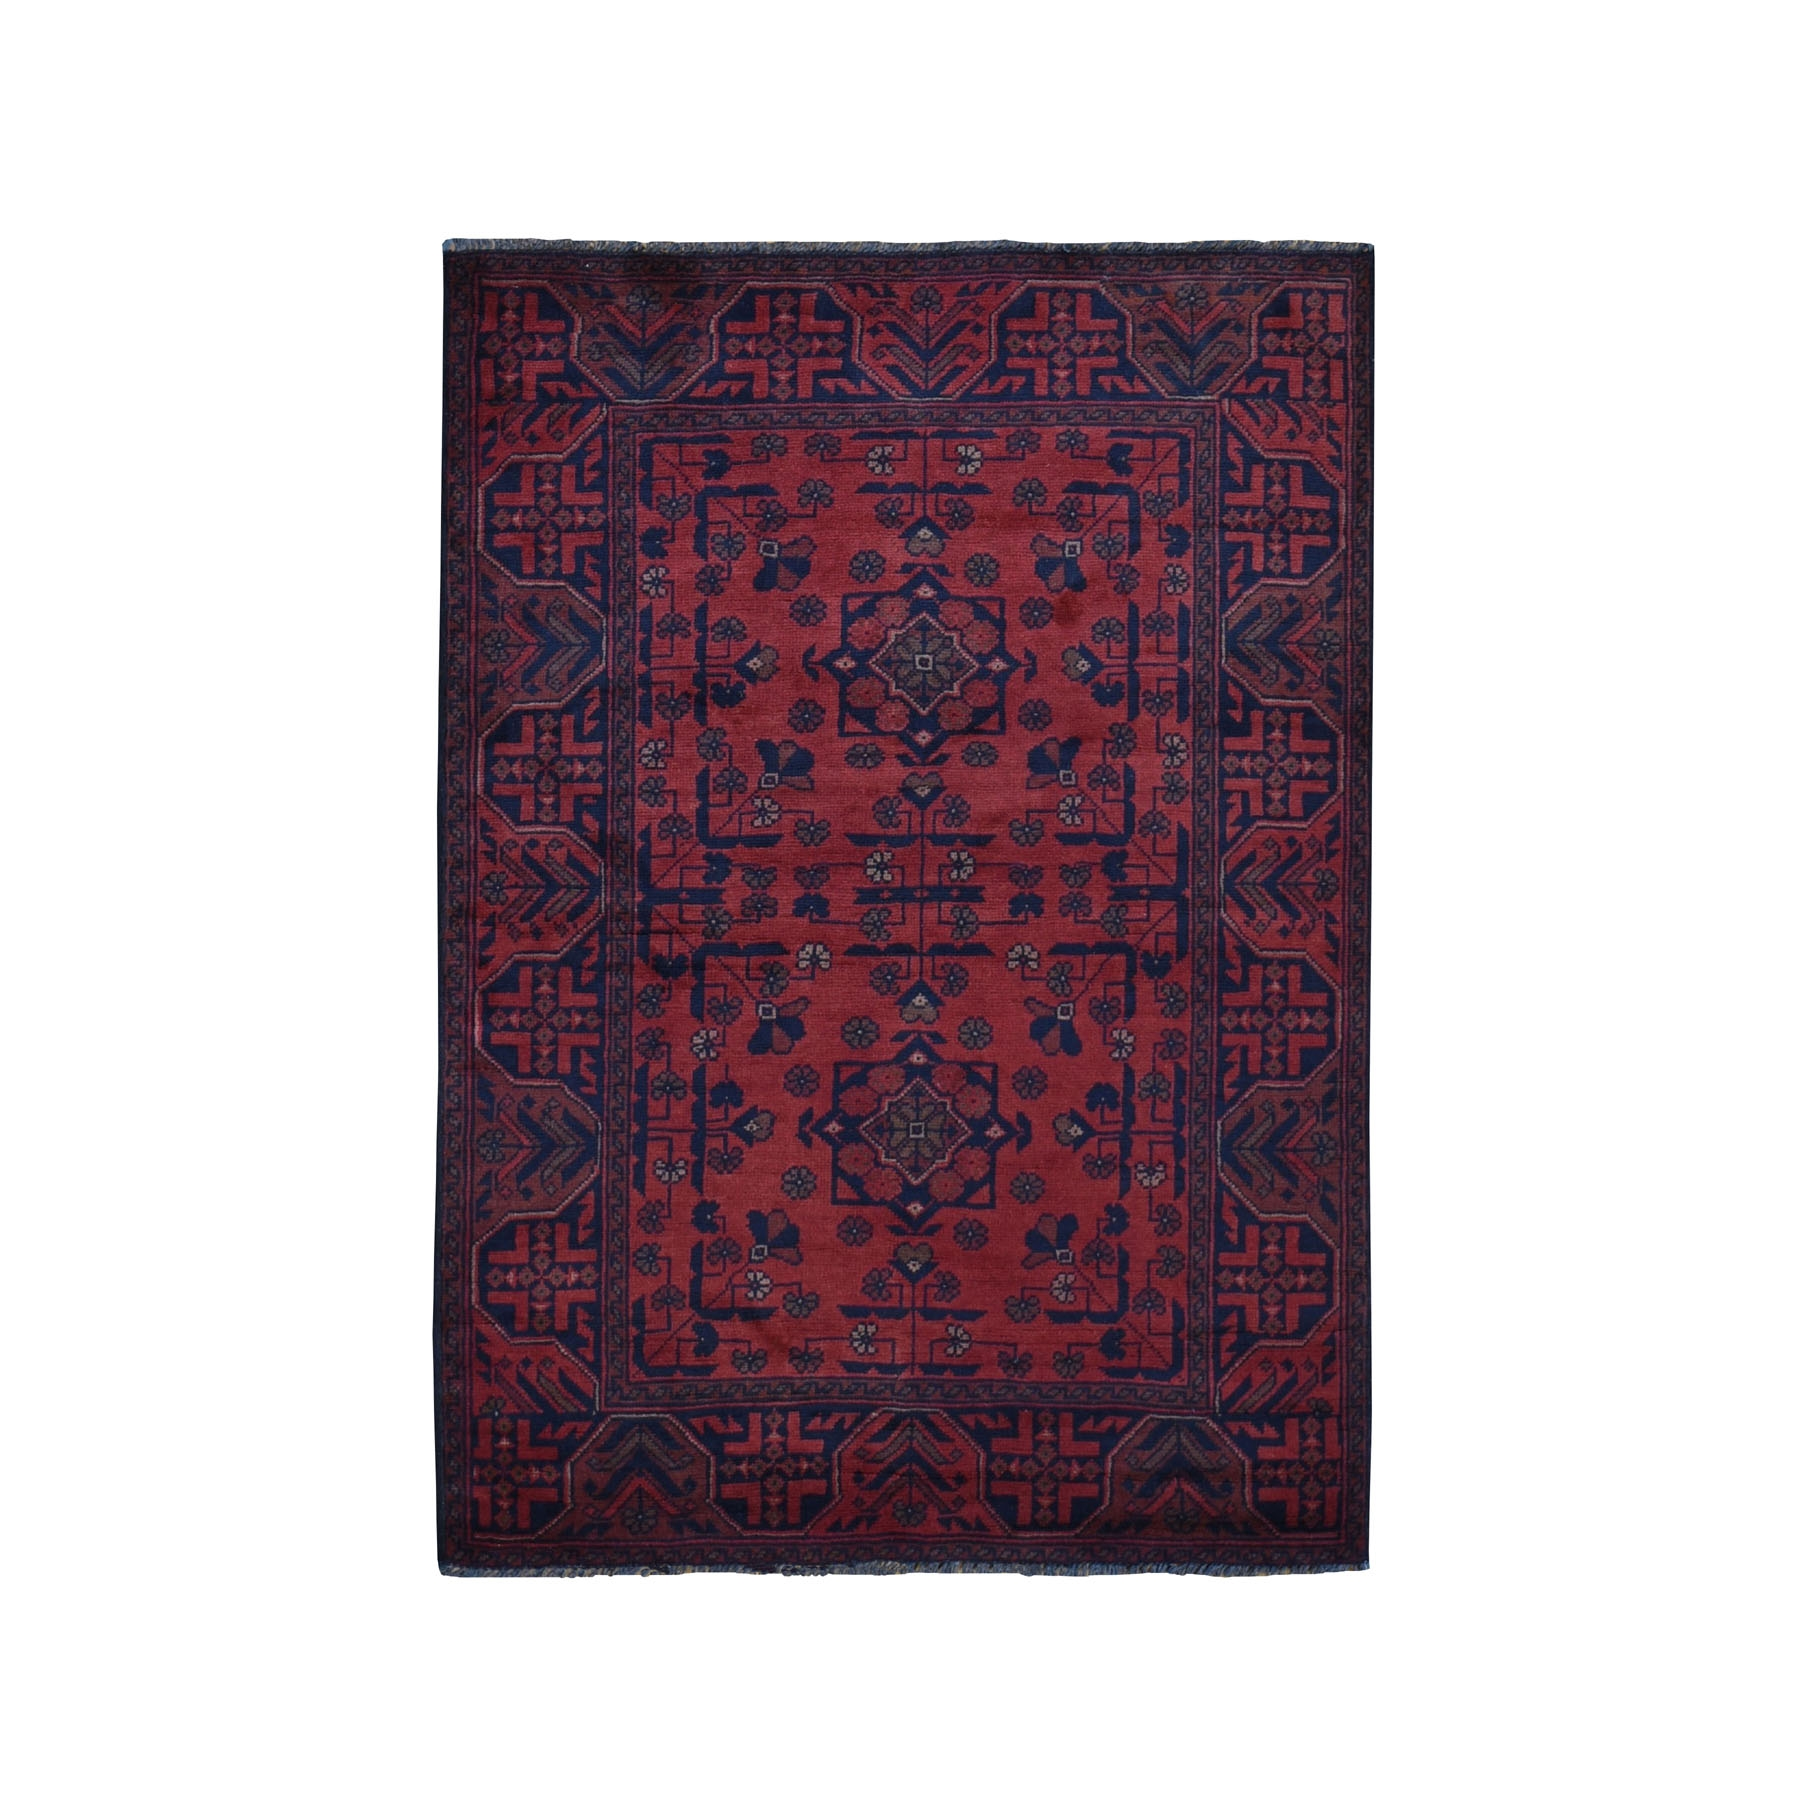 """3'5""""X4'10"""" Deep And Saturated Red Afghan Andkhoy Pure Wool Hand Knotted Oriental Rug moad97b8"""